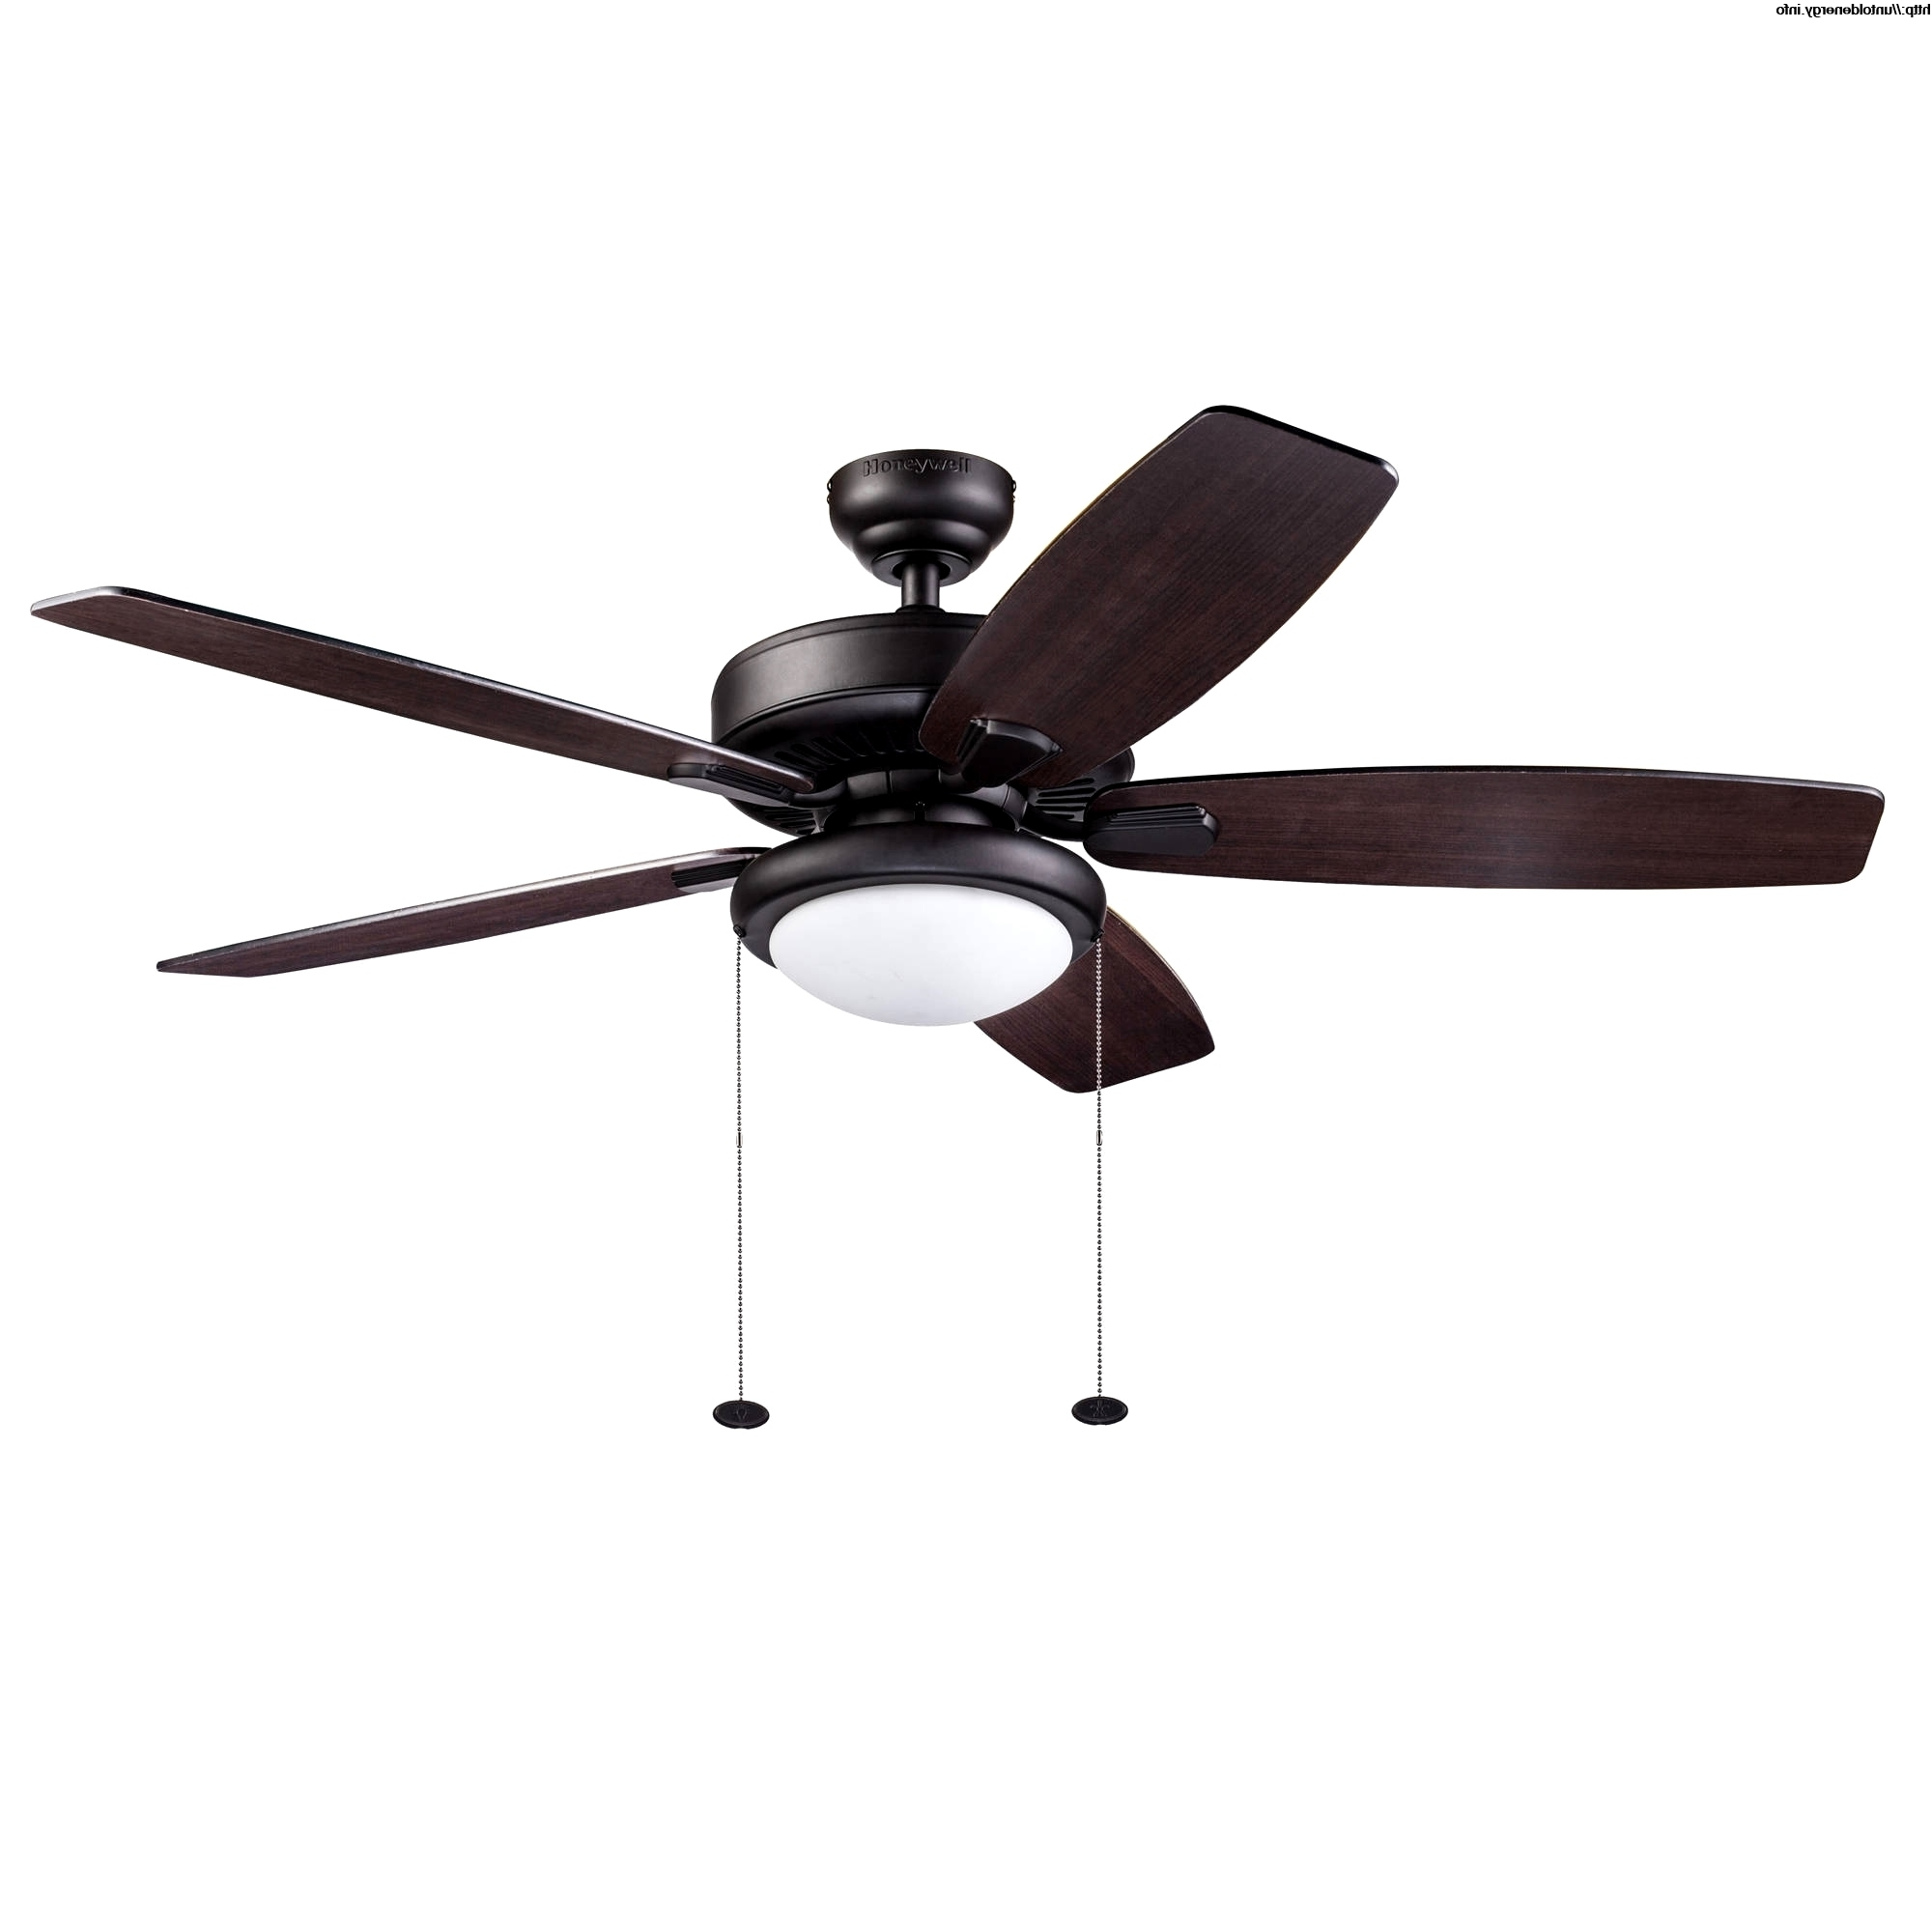 Outdoor Lighting Pertaining To 72 Predator Bronze Outdoor Ceiling Fans With Light Kit (View 18 of 20)